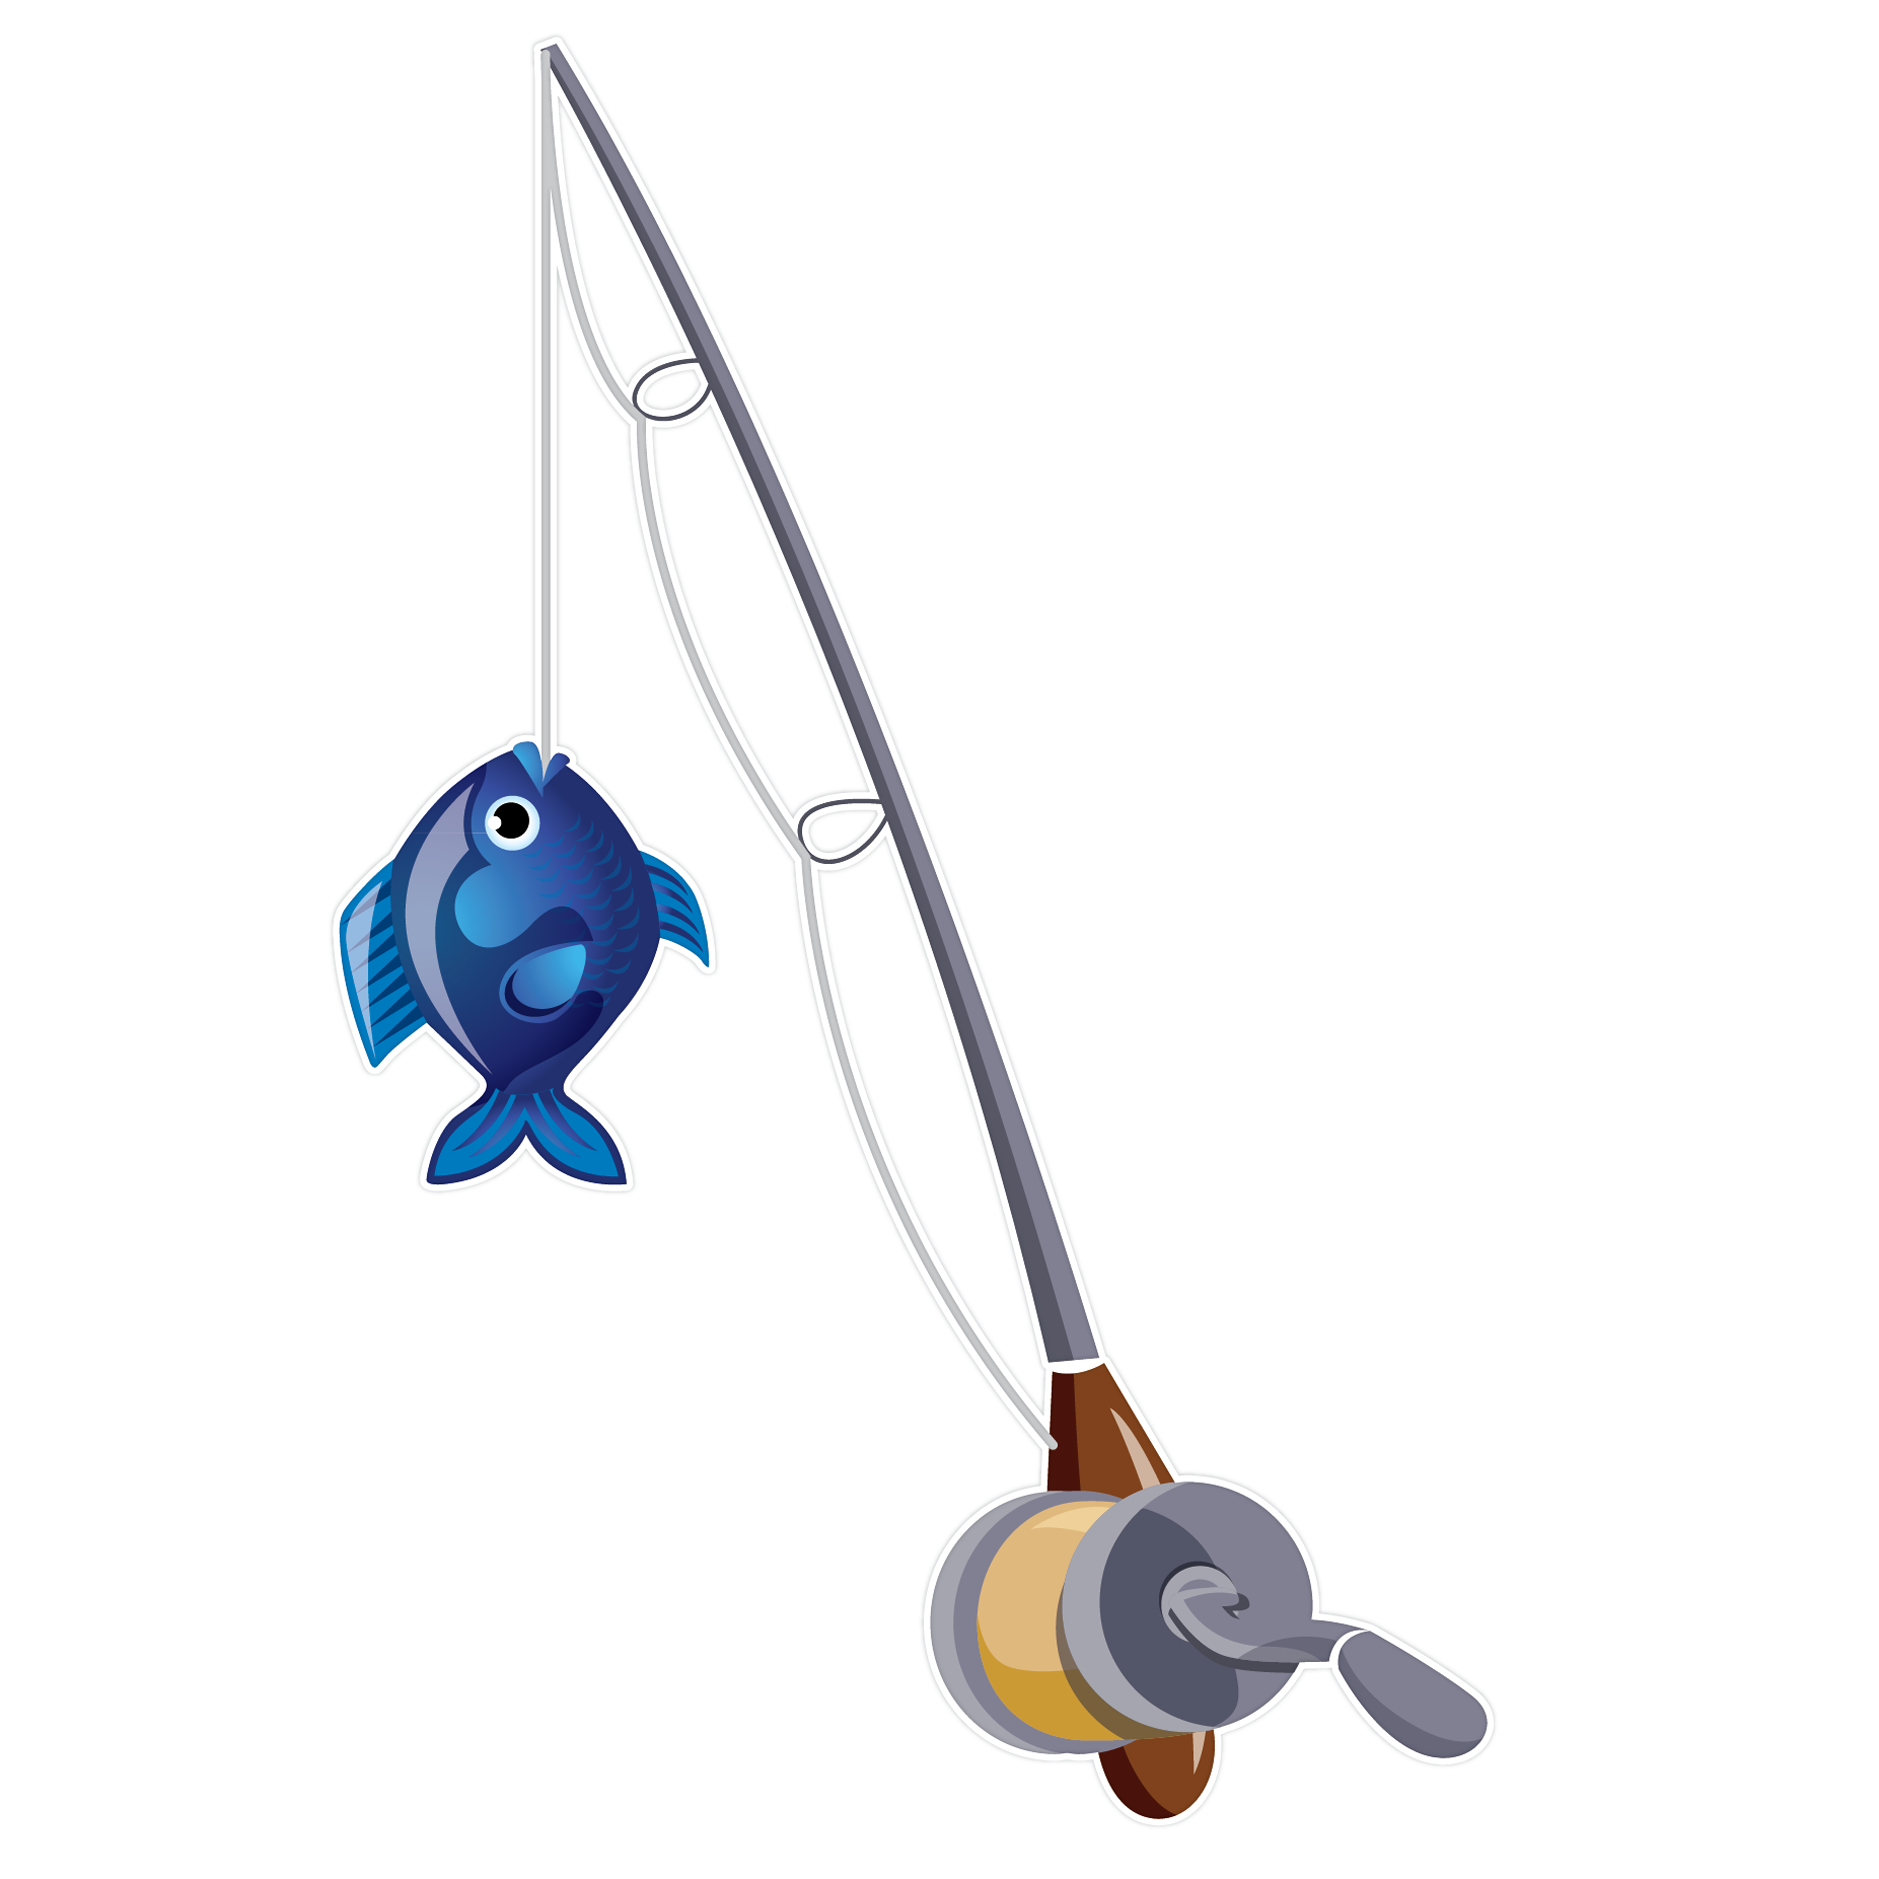 Fishing Rod clipart #14